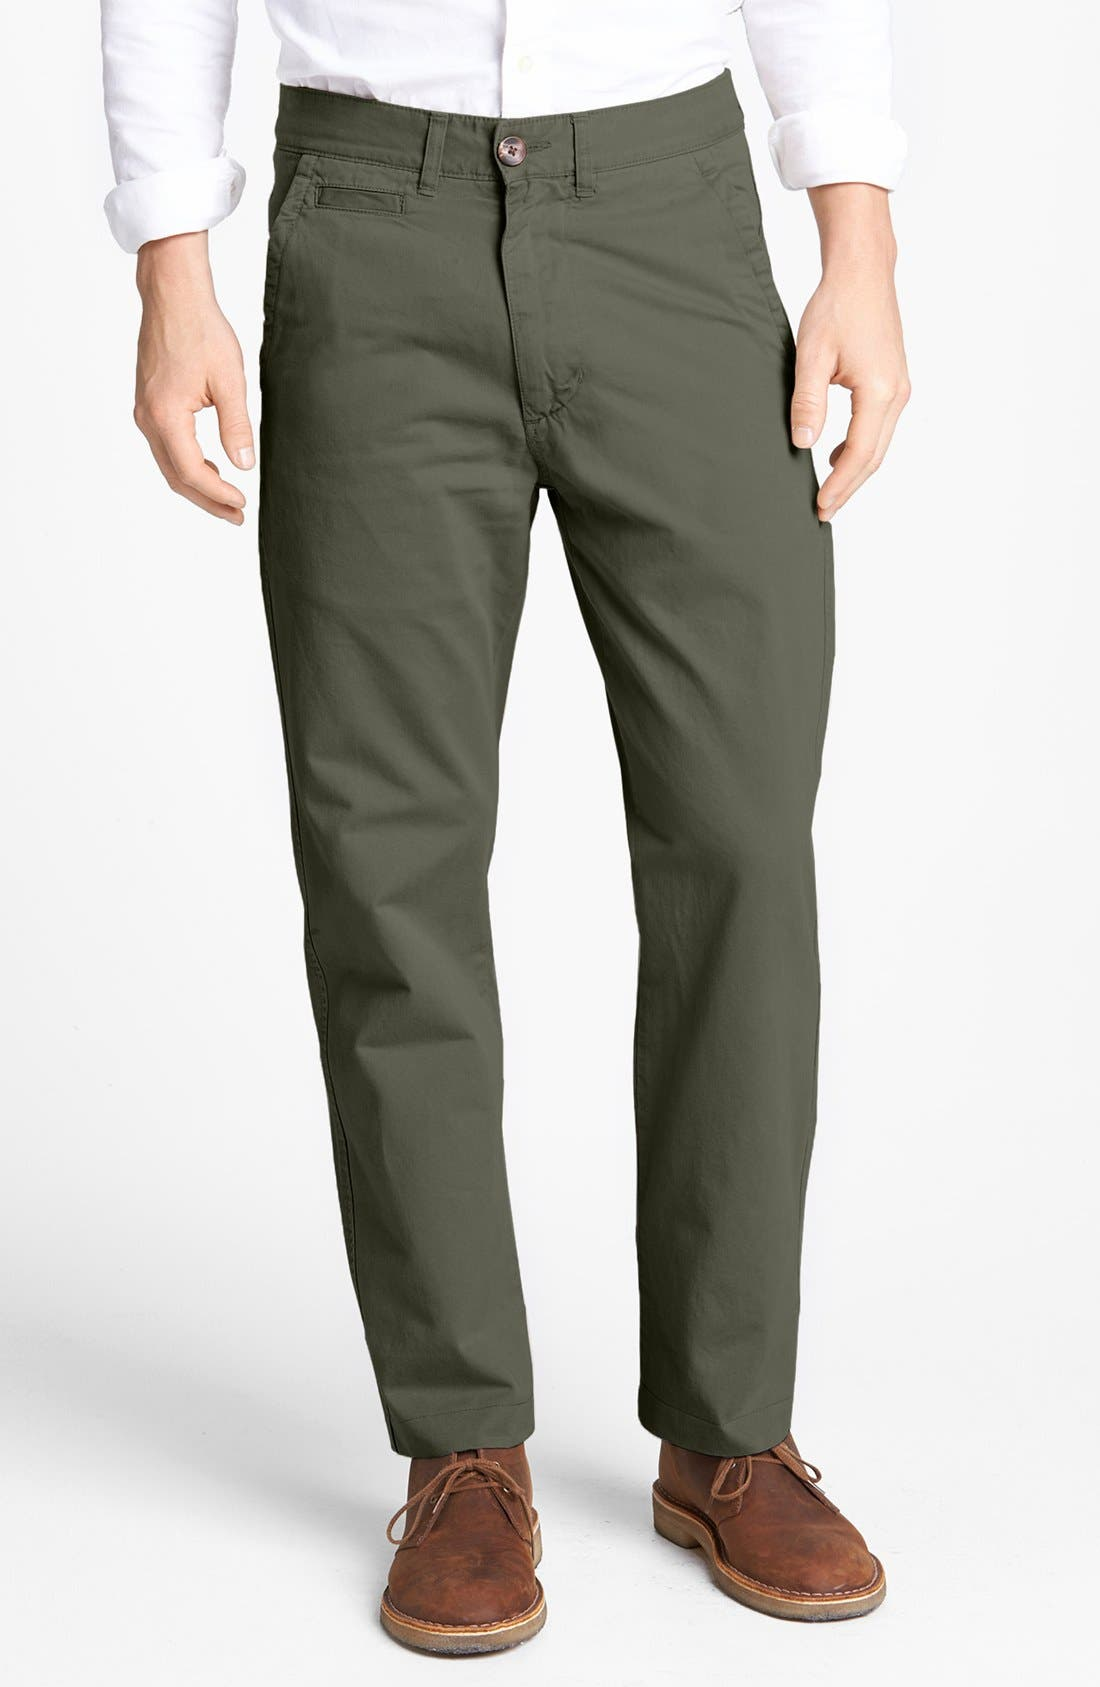 'Sahara' Trim Fit Vintage Washed Twill Chinos,                             Main thumbnail 5, color,